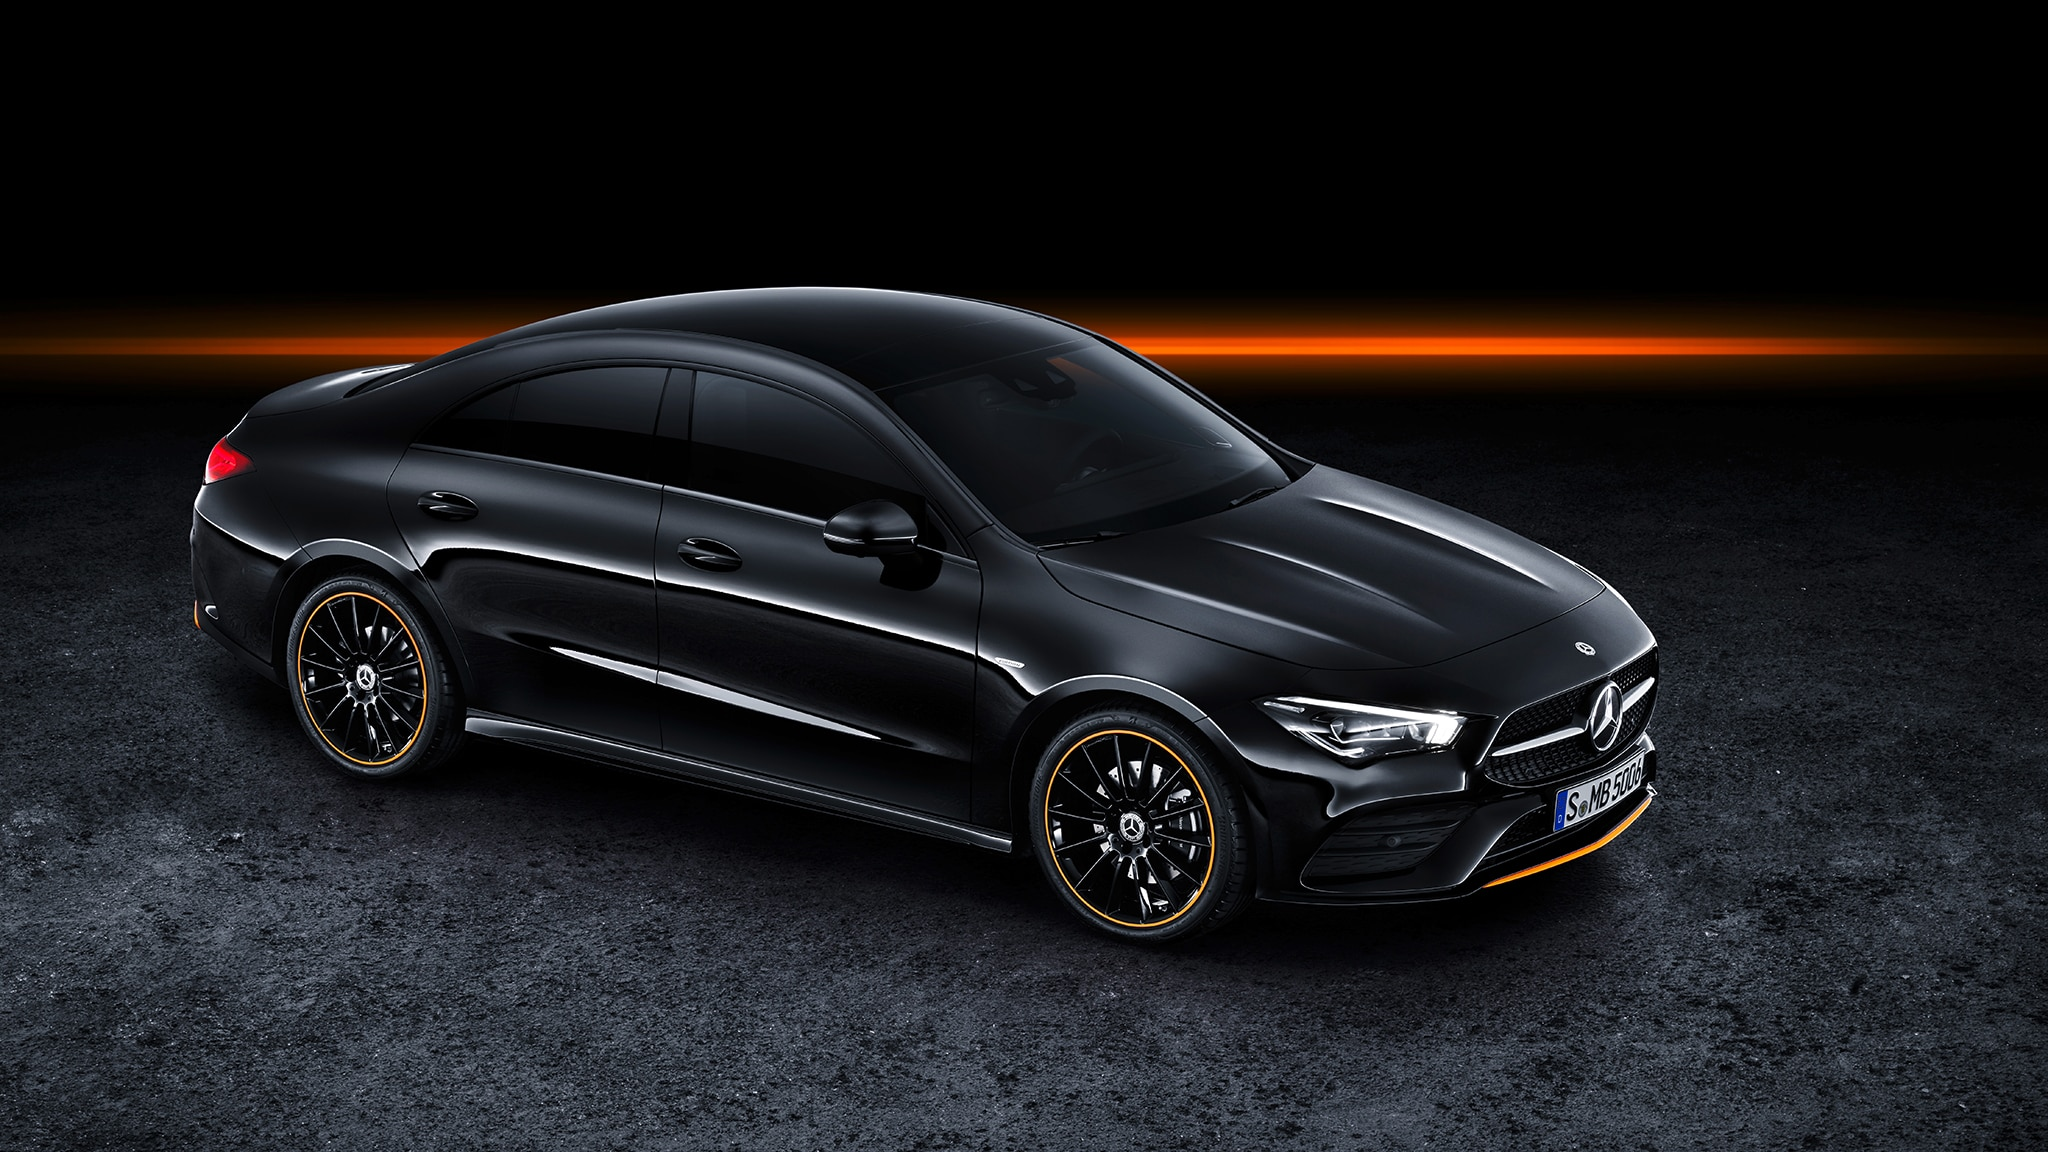 2020 Mercedes-Benz CLA-class: Lots Of Tech, Much Better